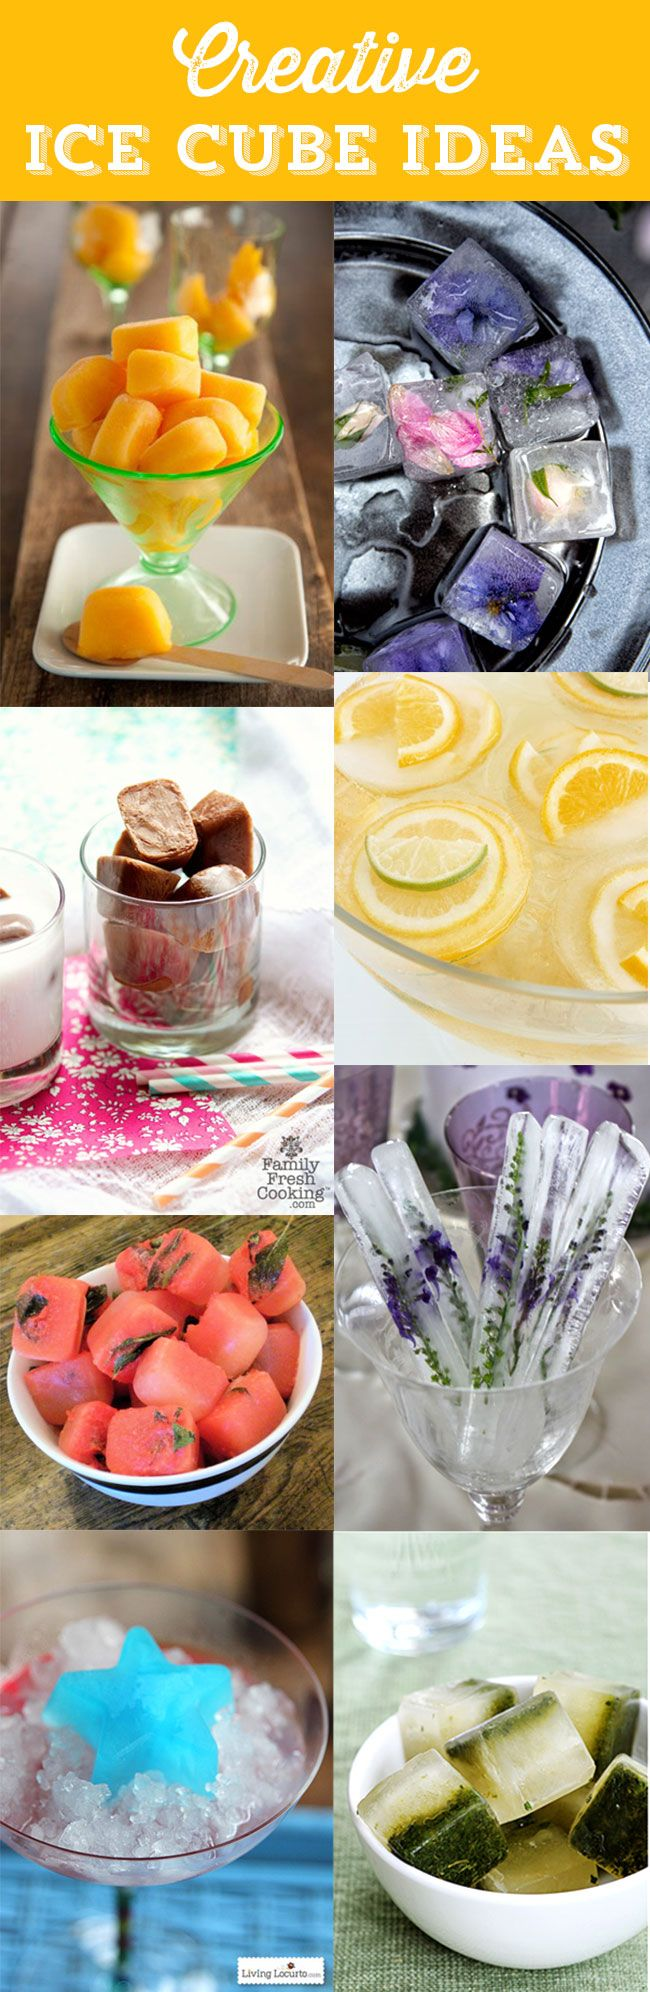 Creative Ice Cube Recipes! Simple and easy ways to serve your favorite drinks or party punch.